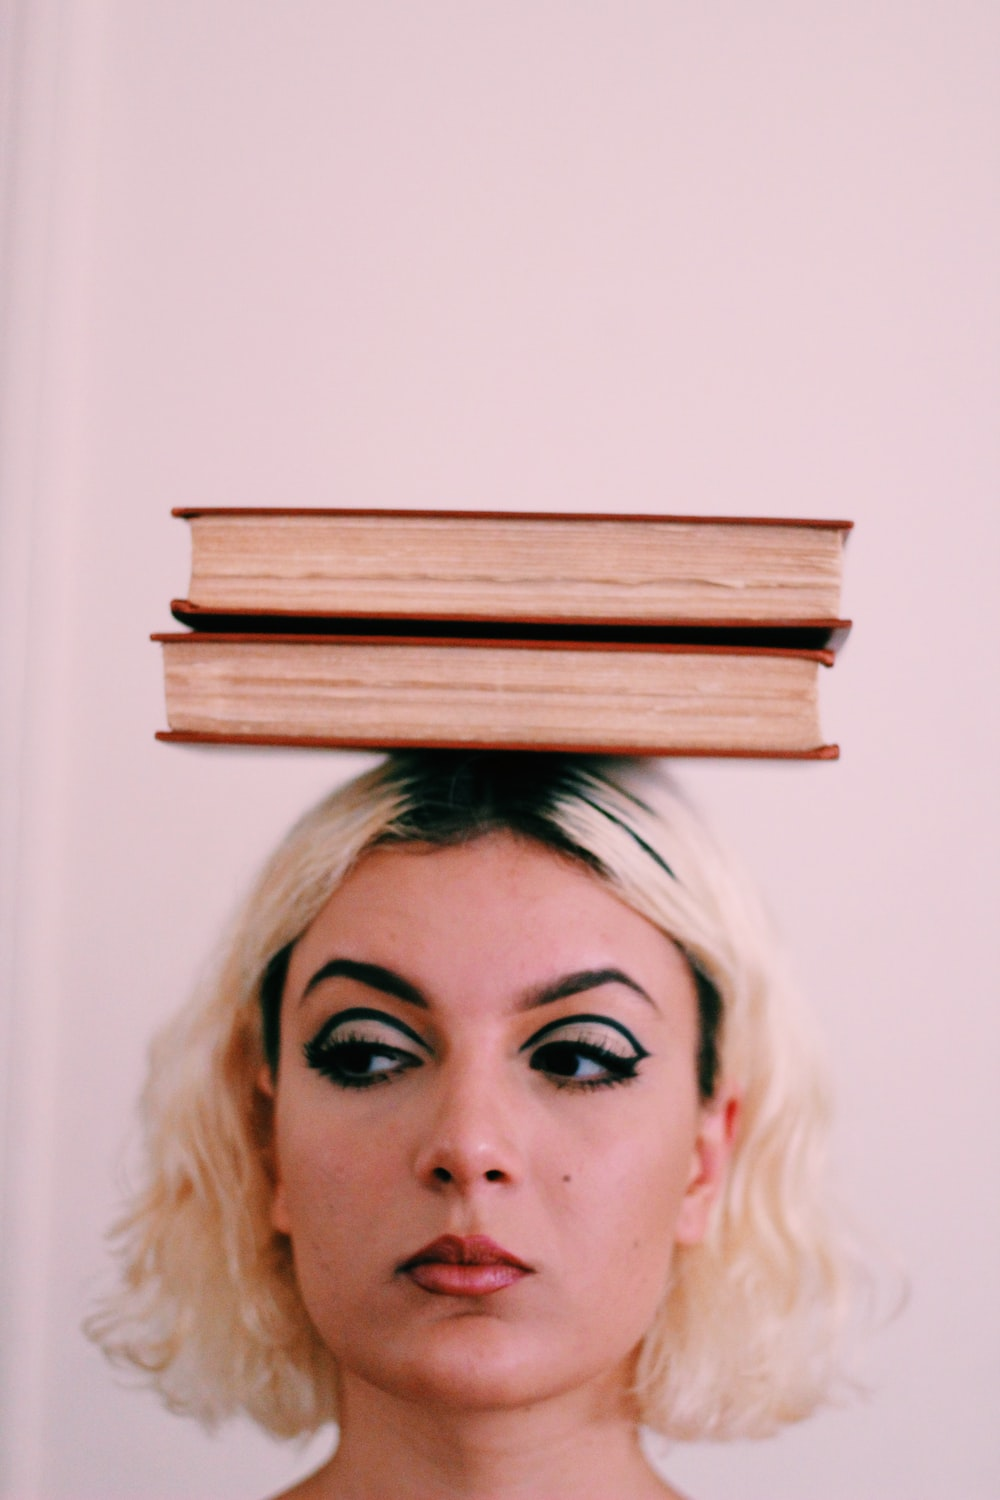 two books on top of woman's head